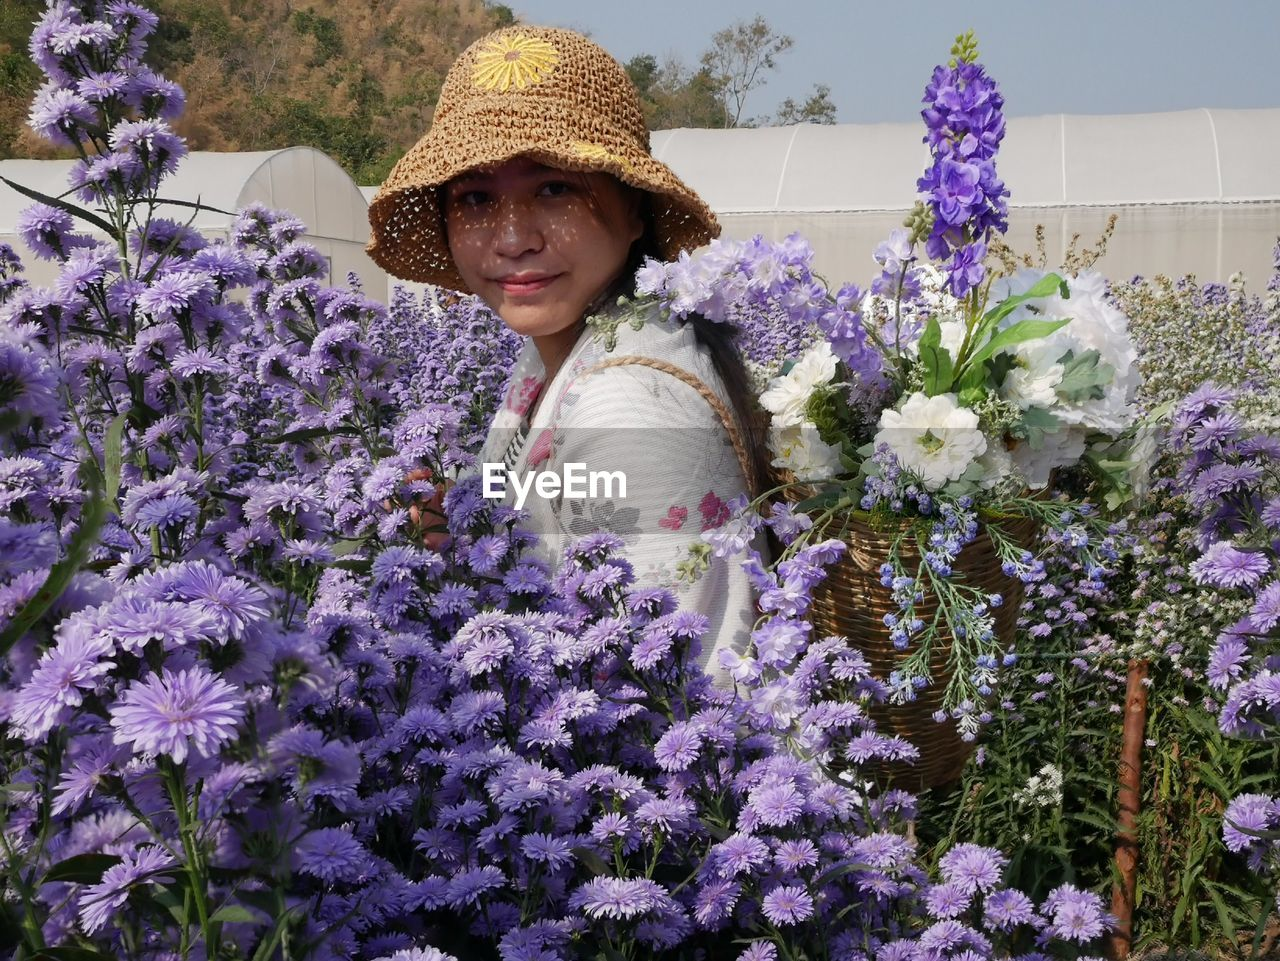 PORTRAIT OF SMILING WOMAN WITH PURPLE FLOWERS IN GARDEN